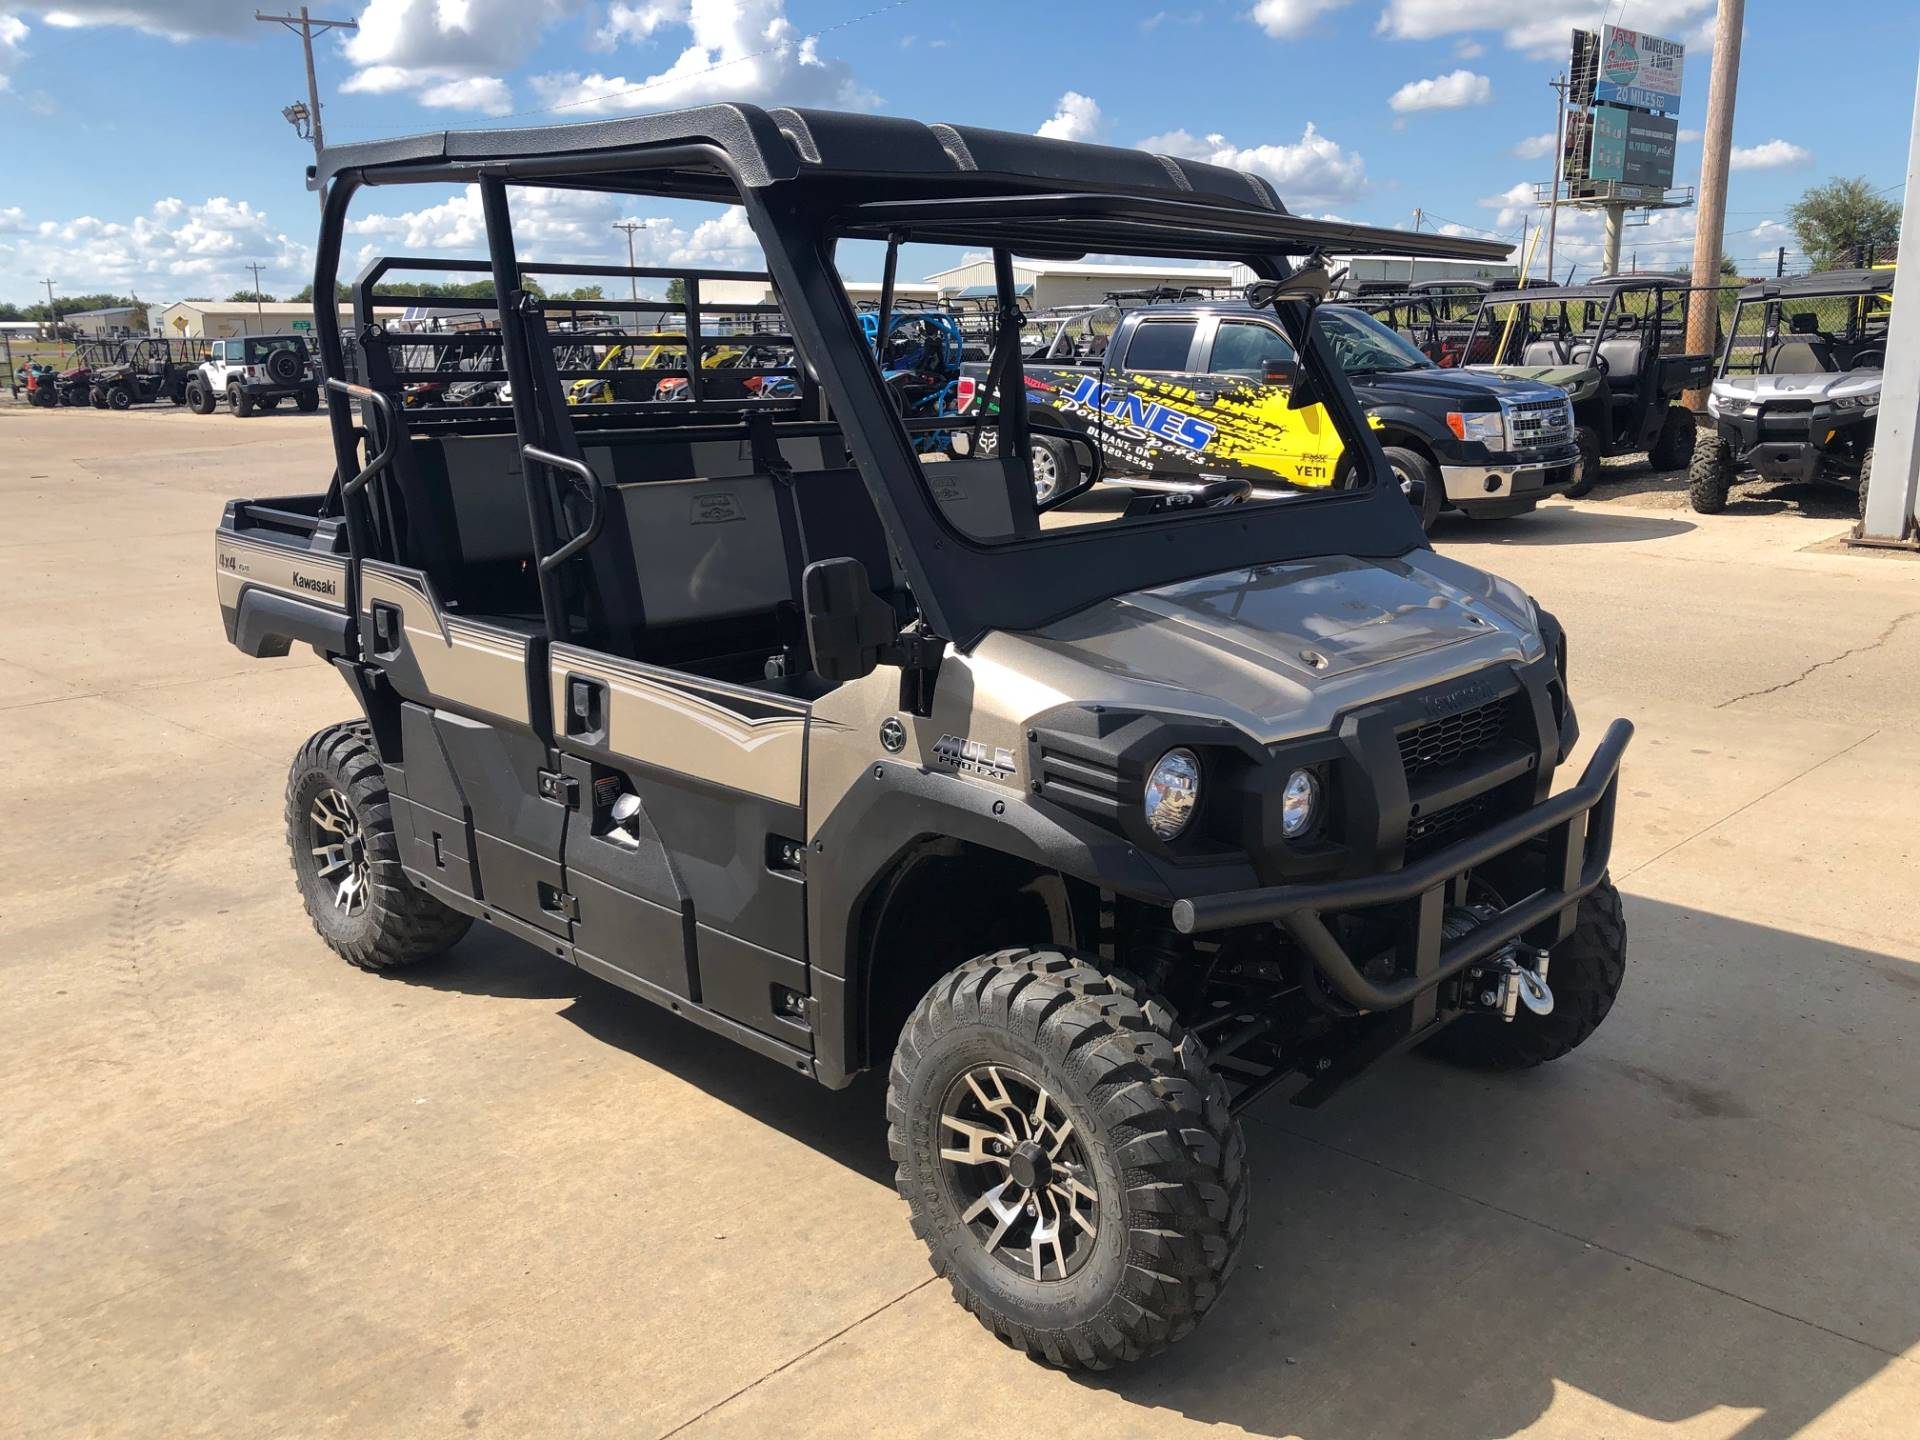 2018 Kawasaki Mule PRO-FXT RANCH EDITION 5